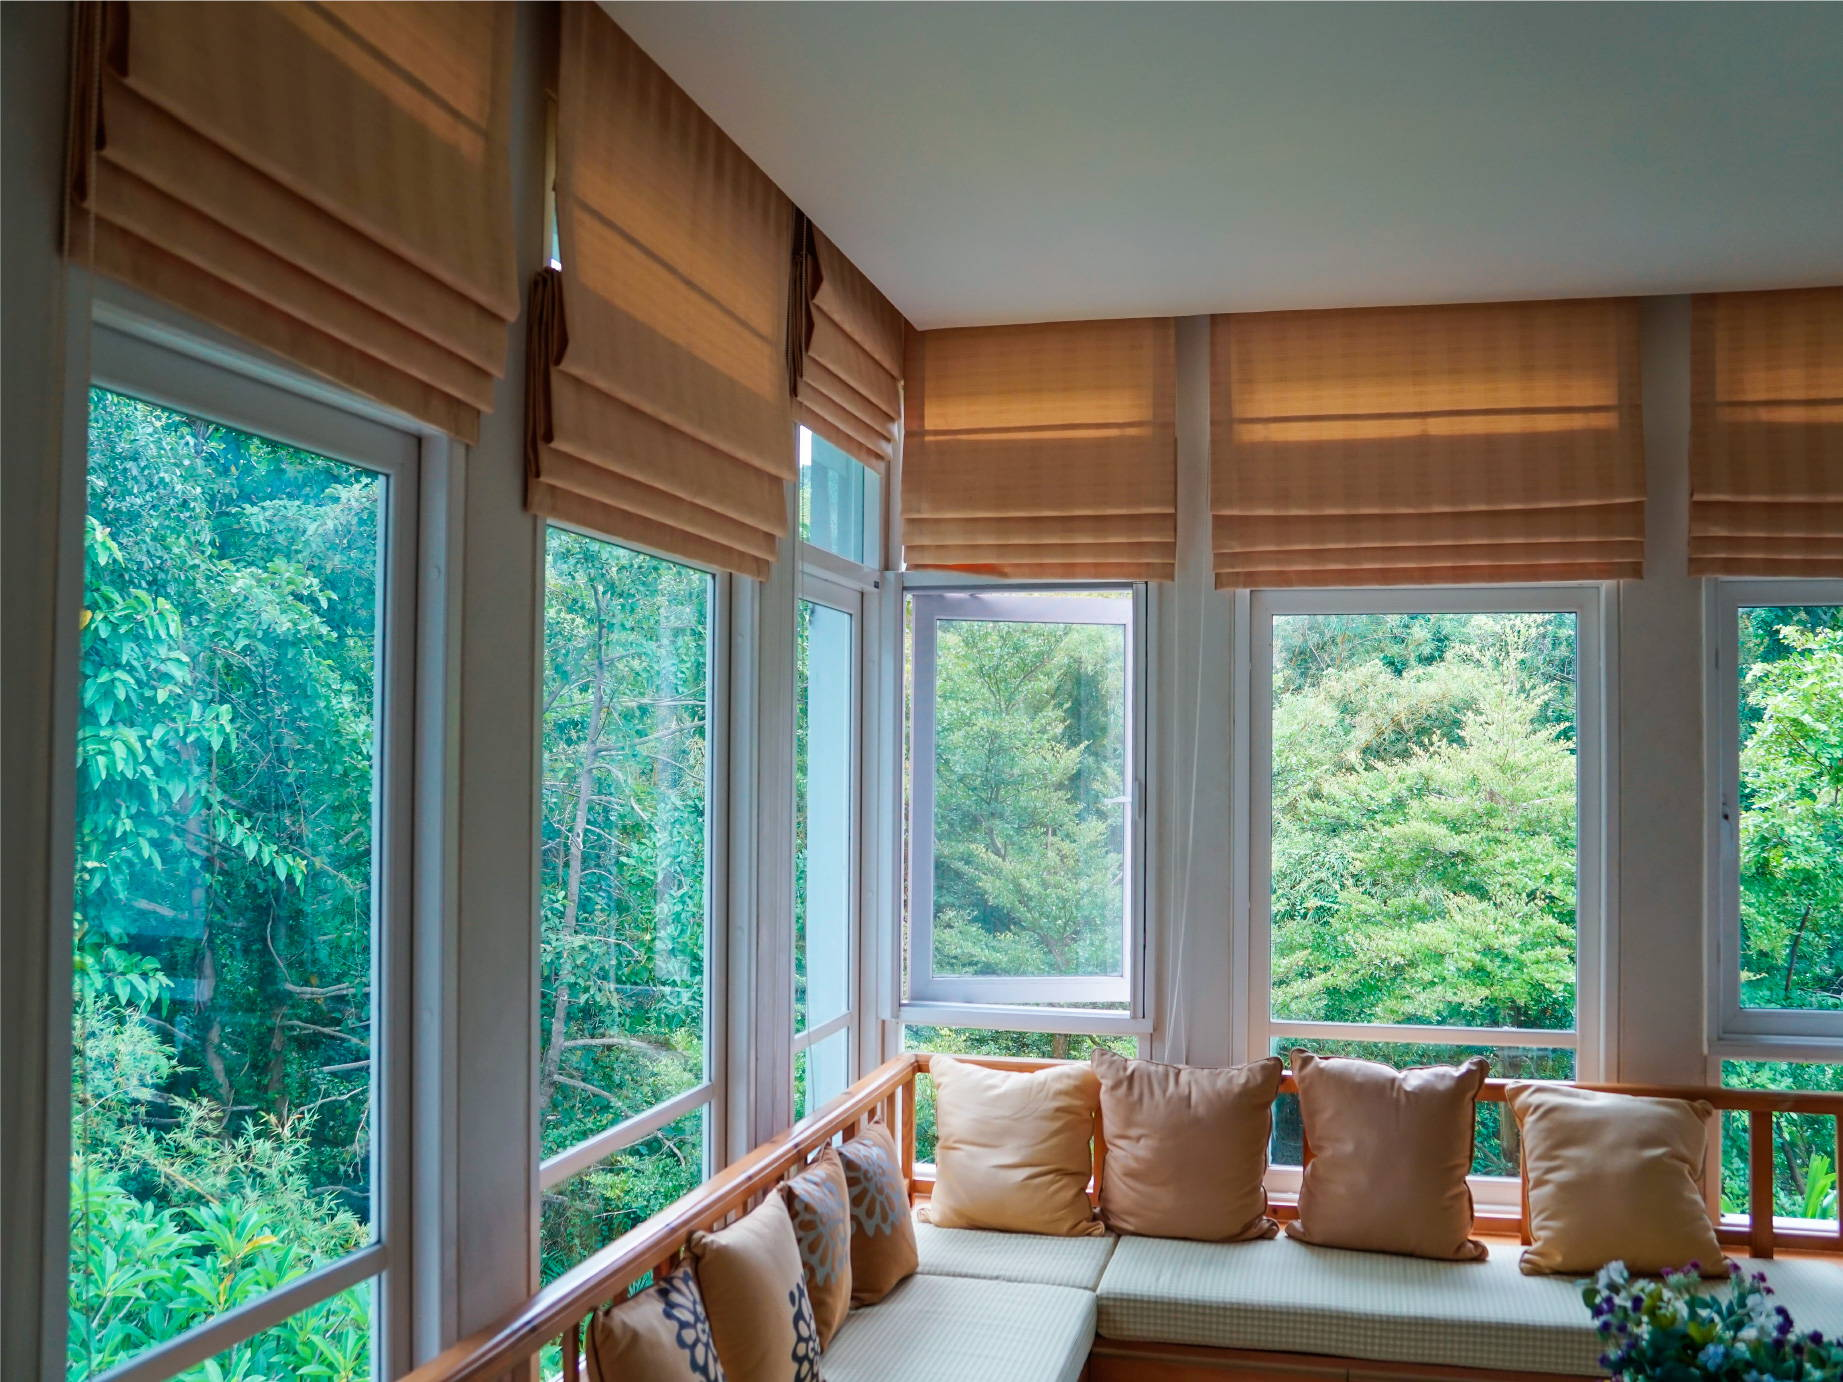 Living Room Window Coverings - Roman Blinds